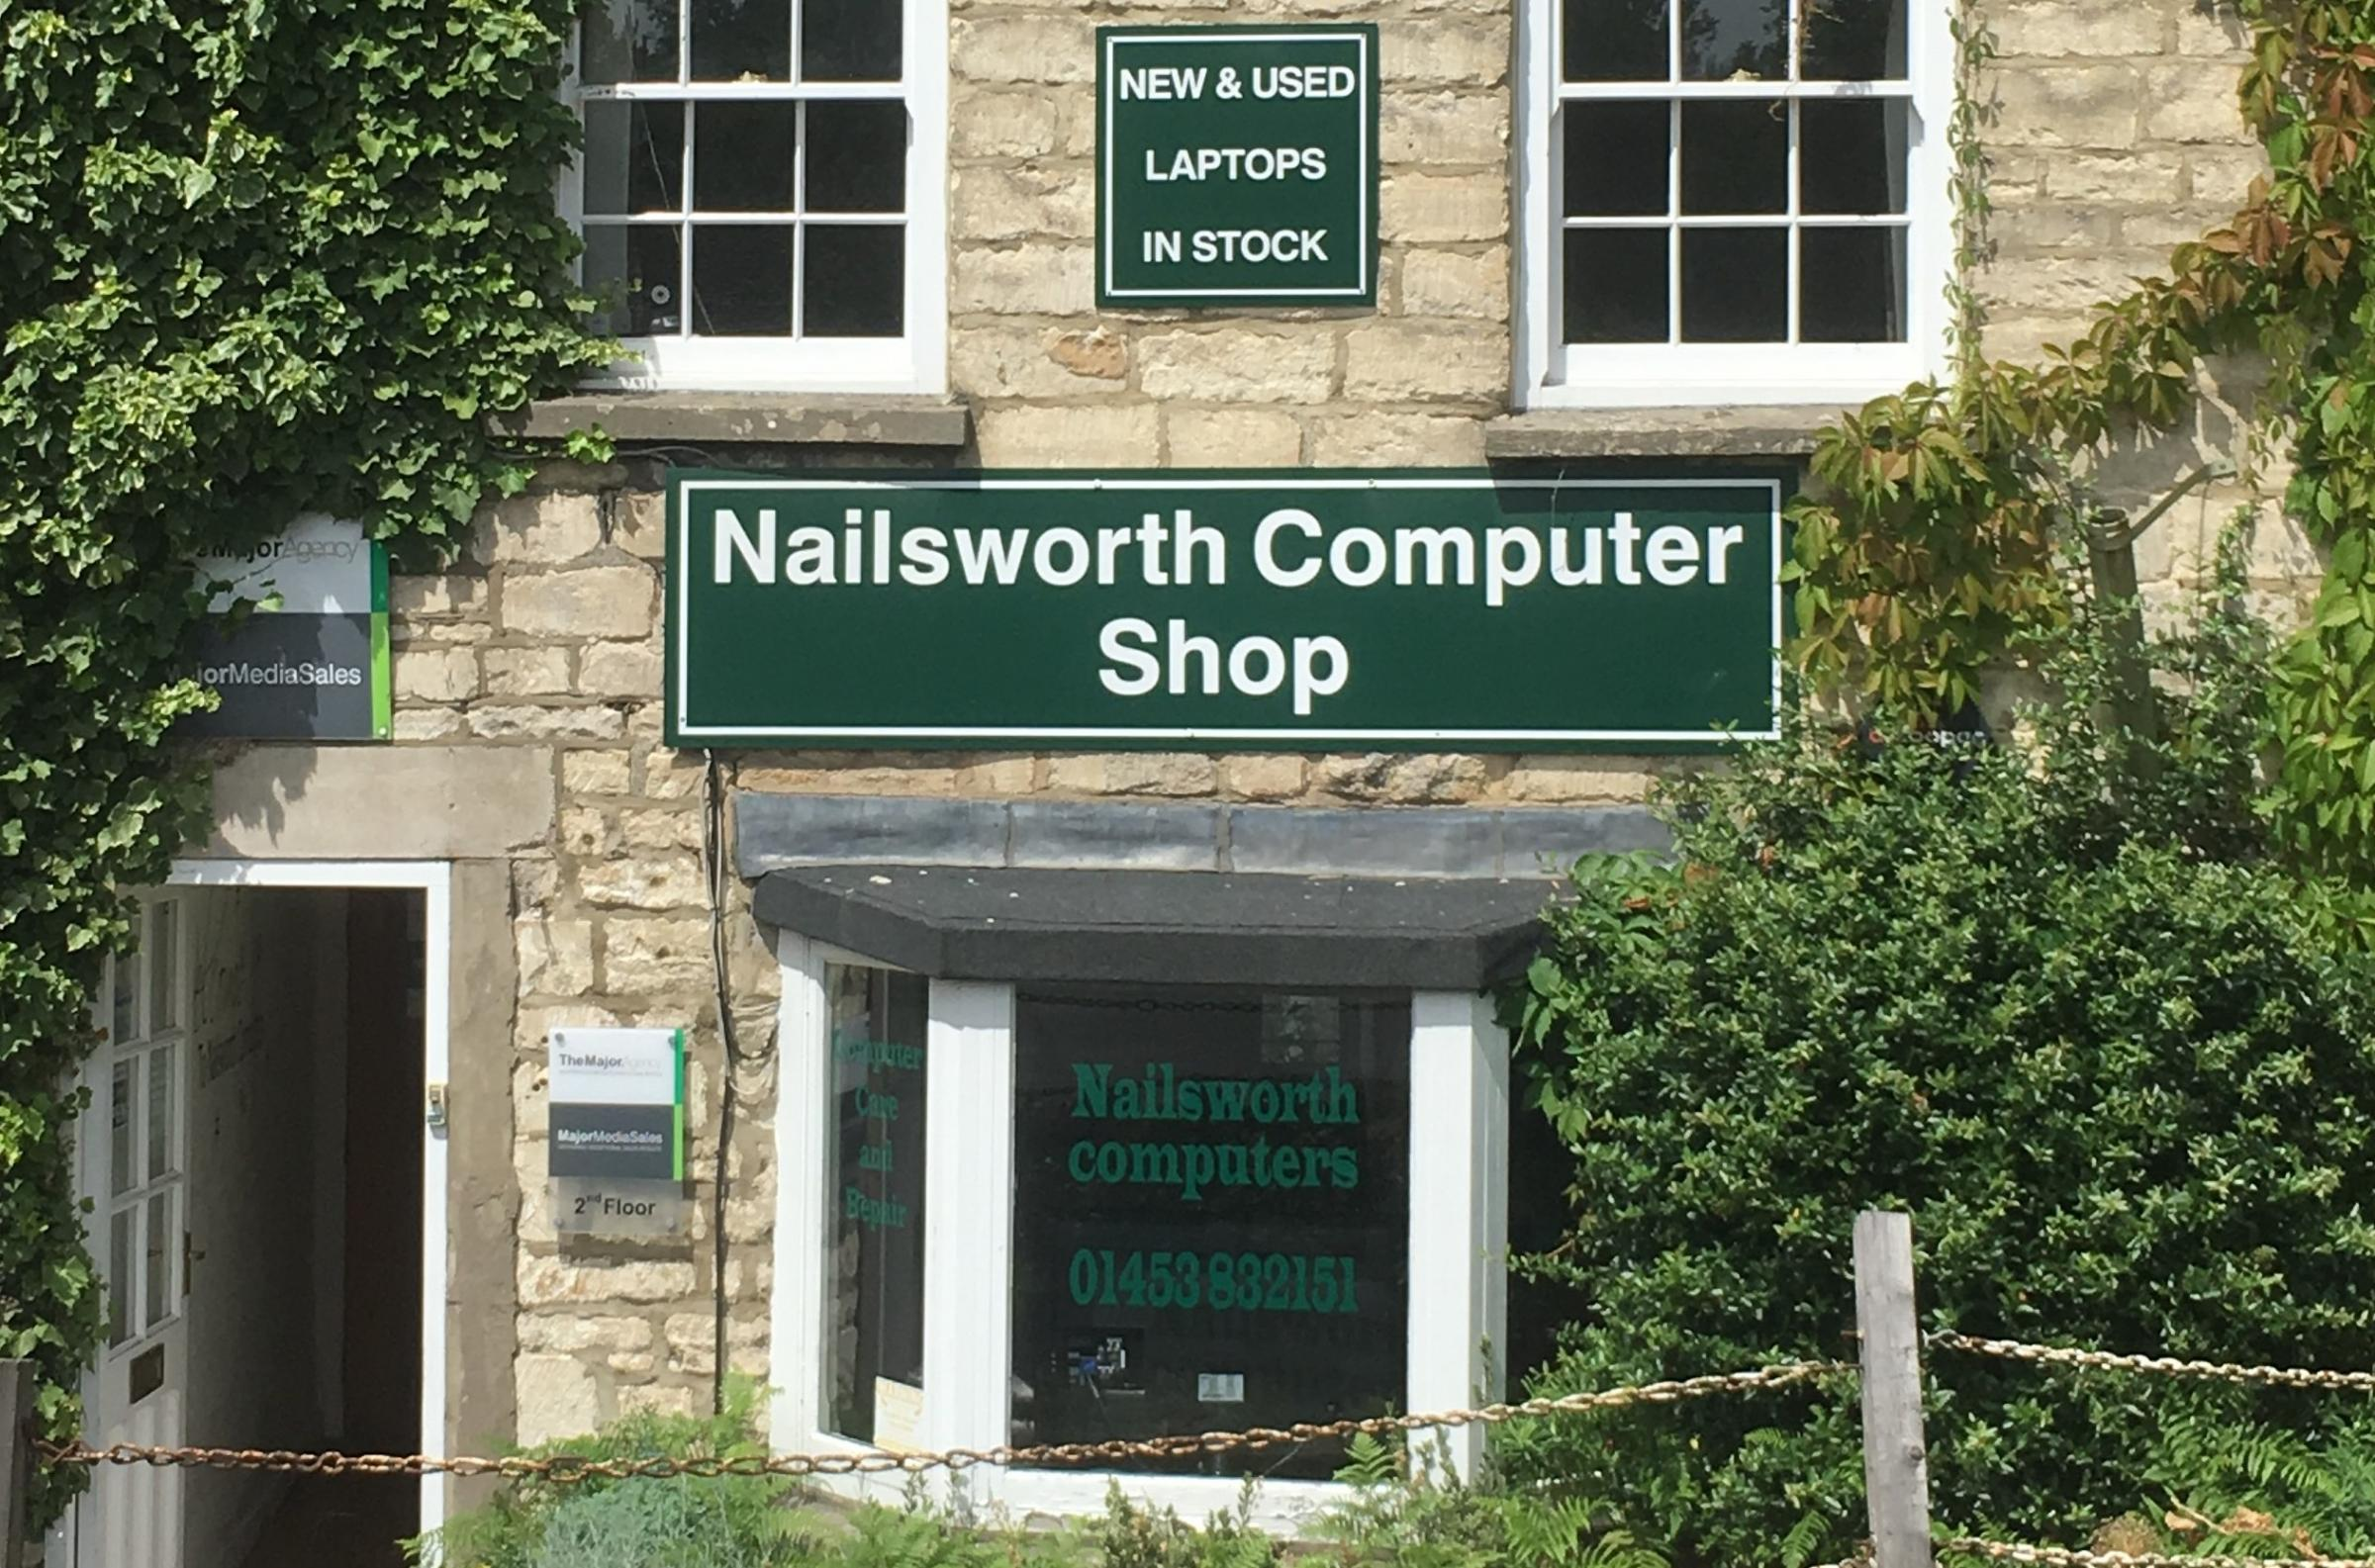 Nailsworth Computer Shop owner Paddy Coyle is warning people about a potential new phone scam